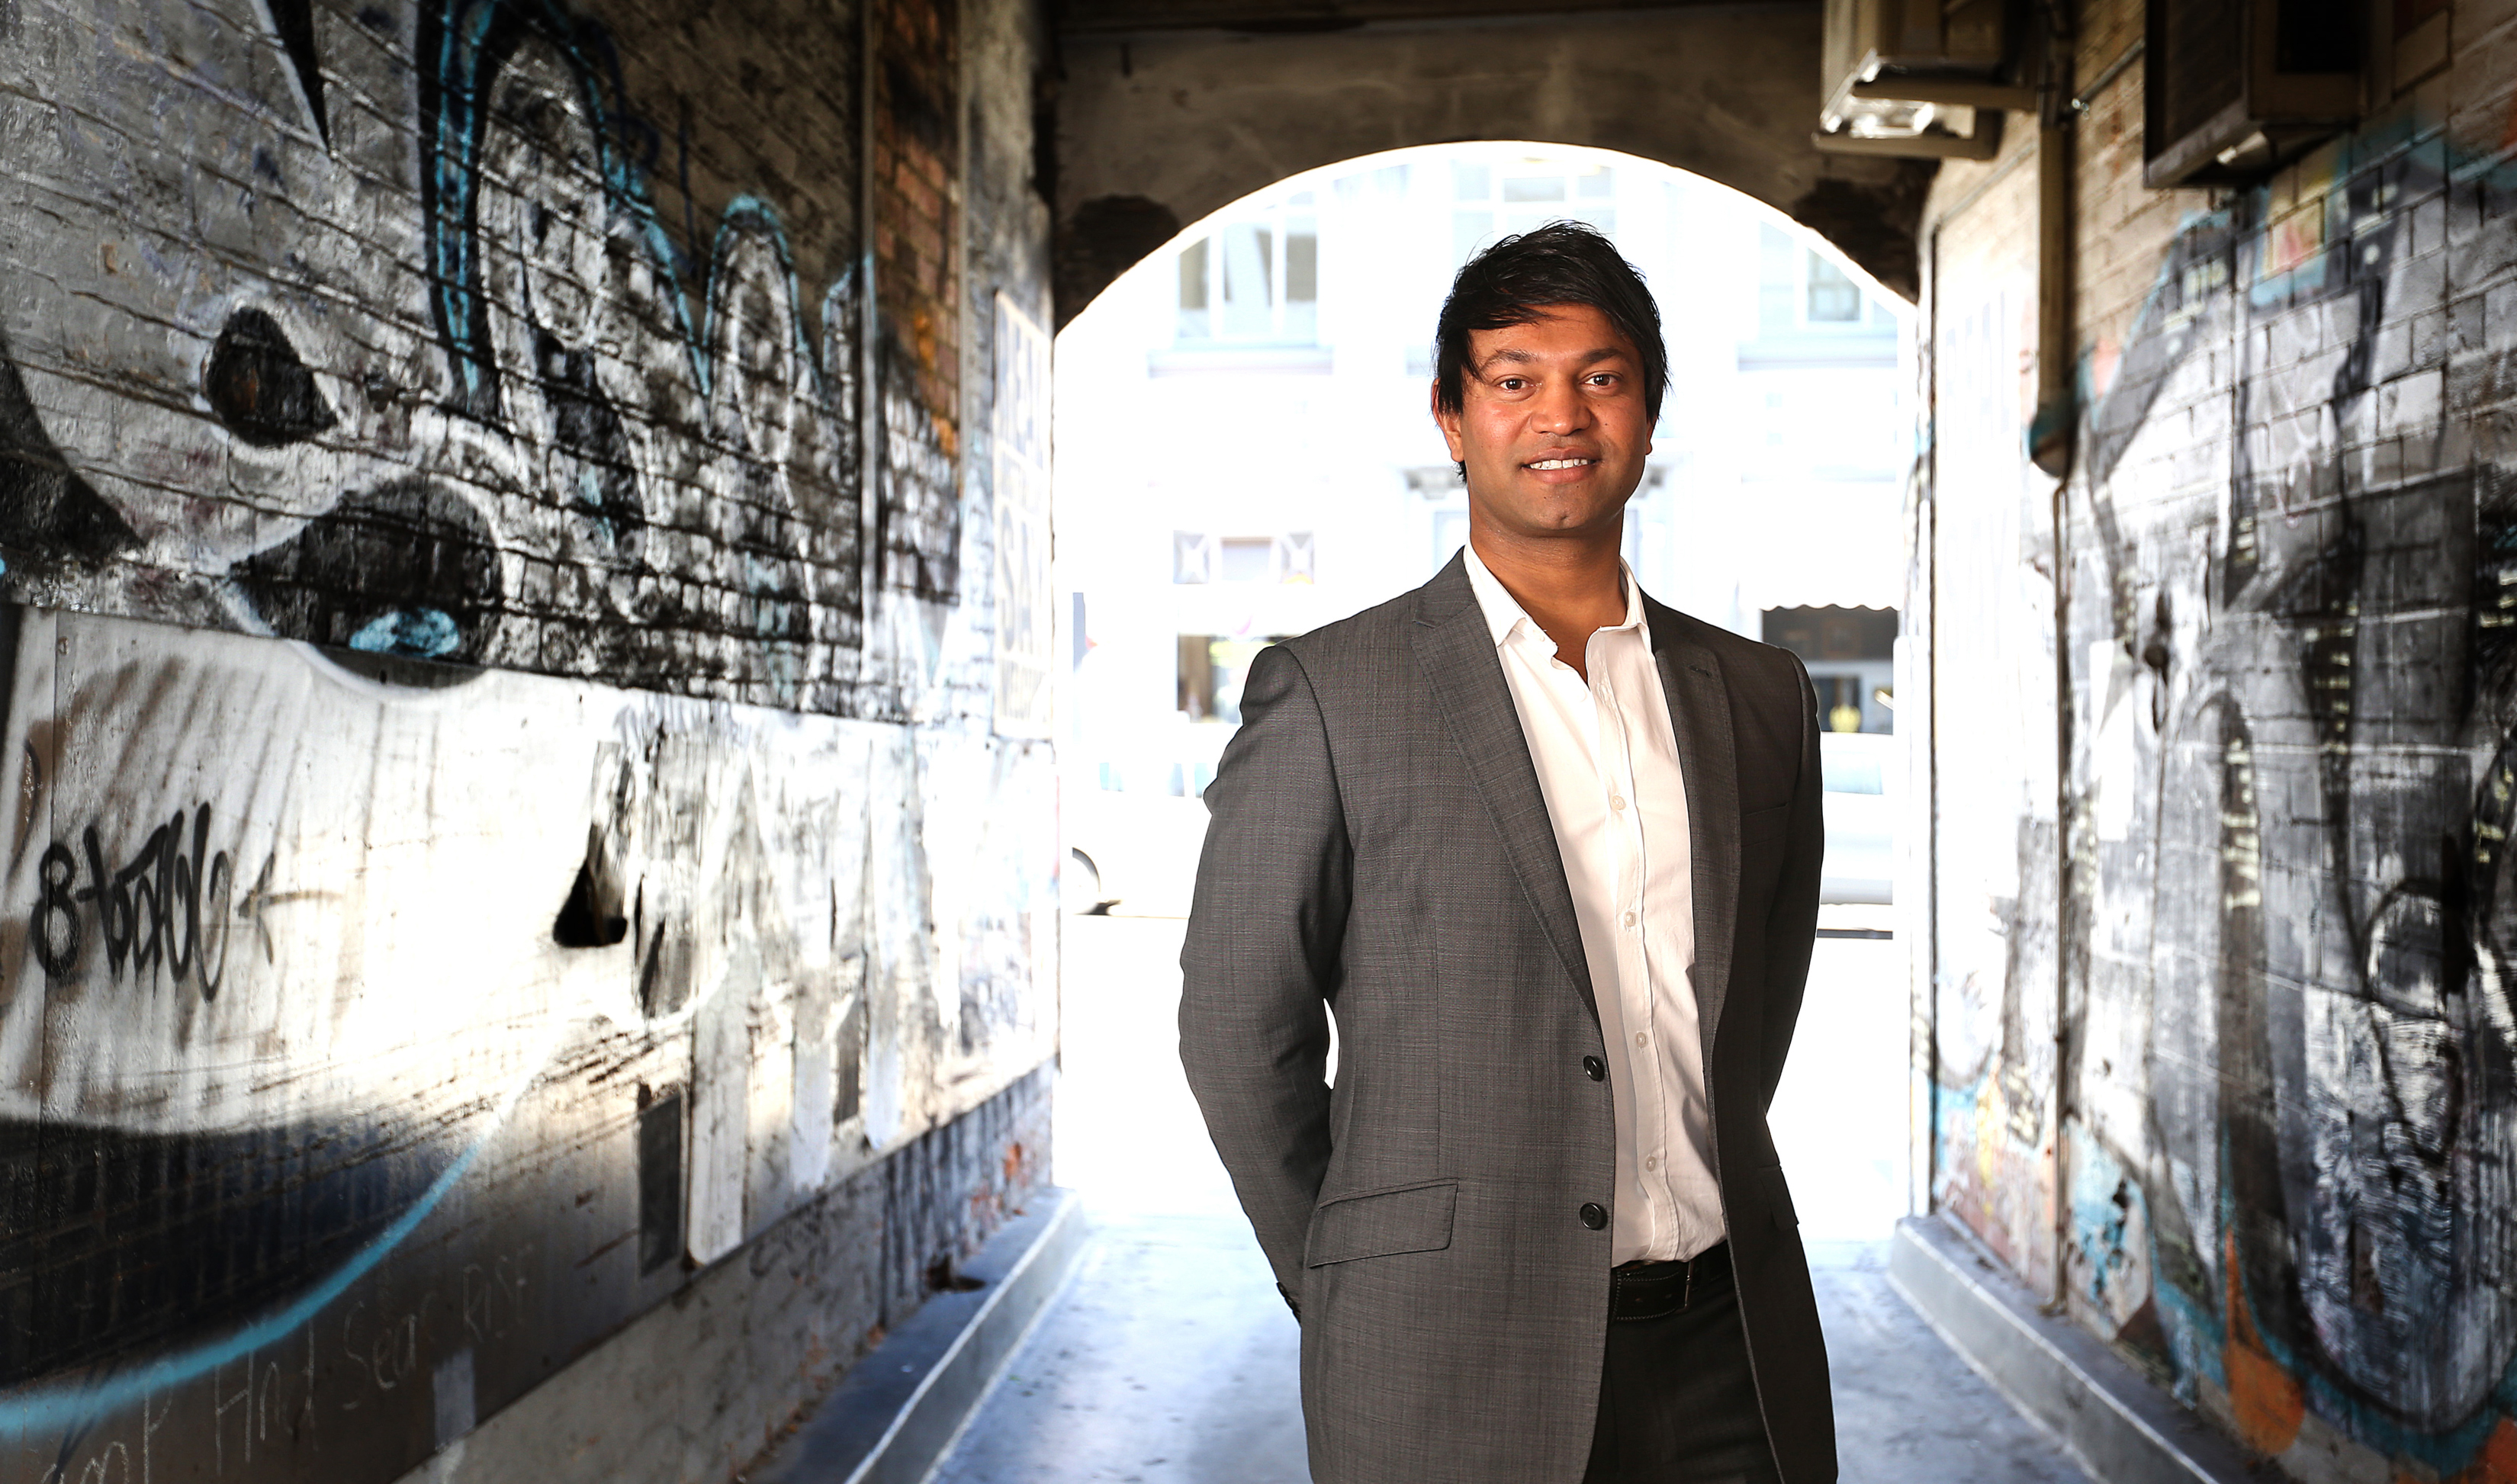 Saroo Brierley RootsTech 2019 Keynote Speaker